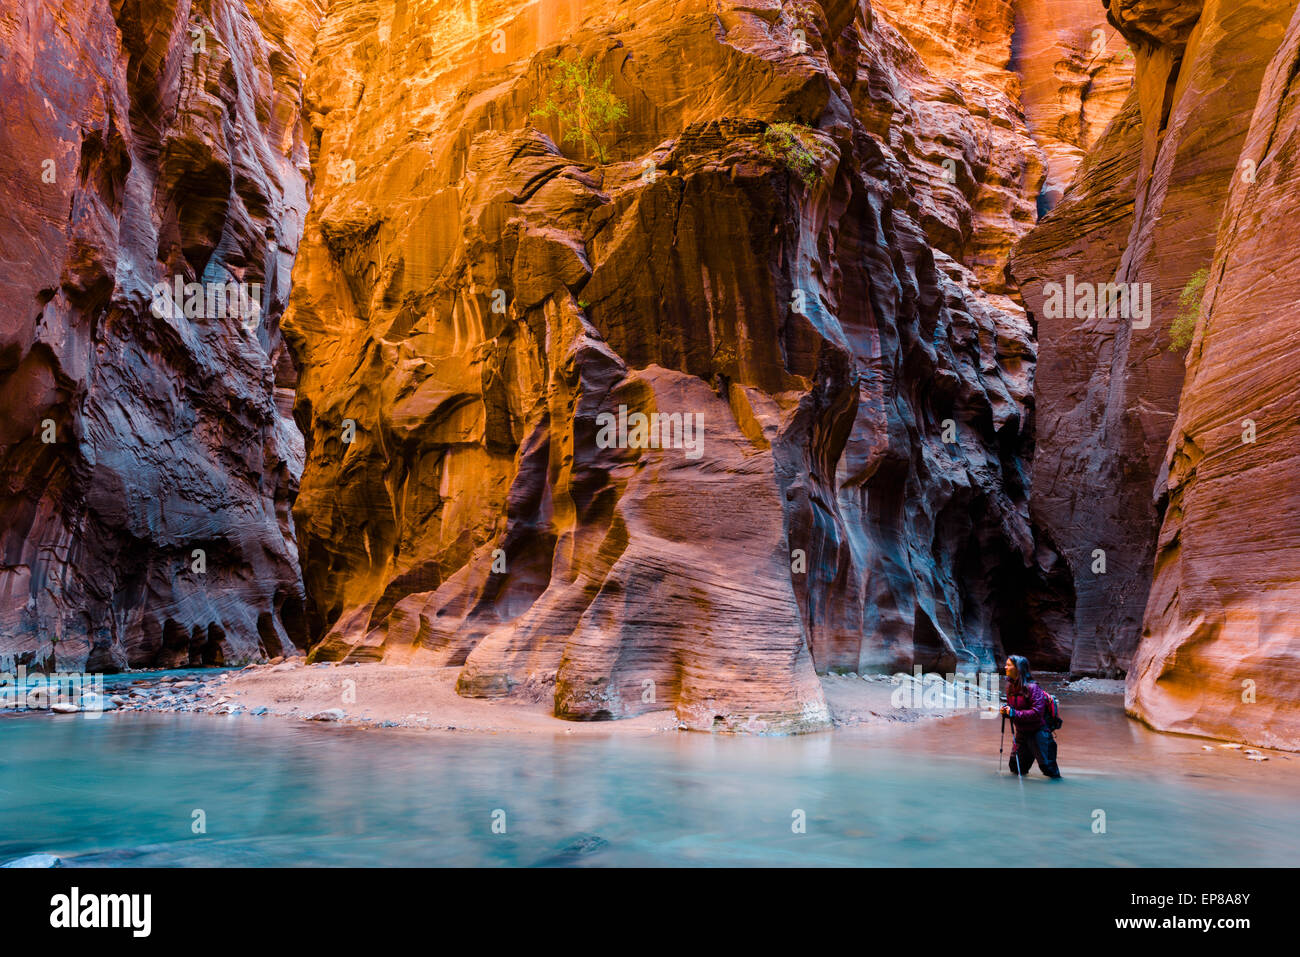 Zion Narrows water hike along Virgin River - Stock Image